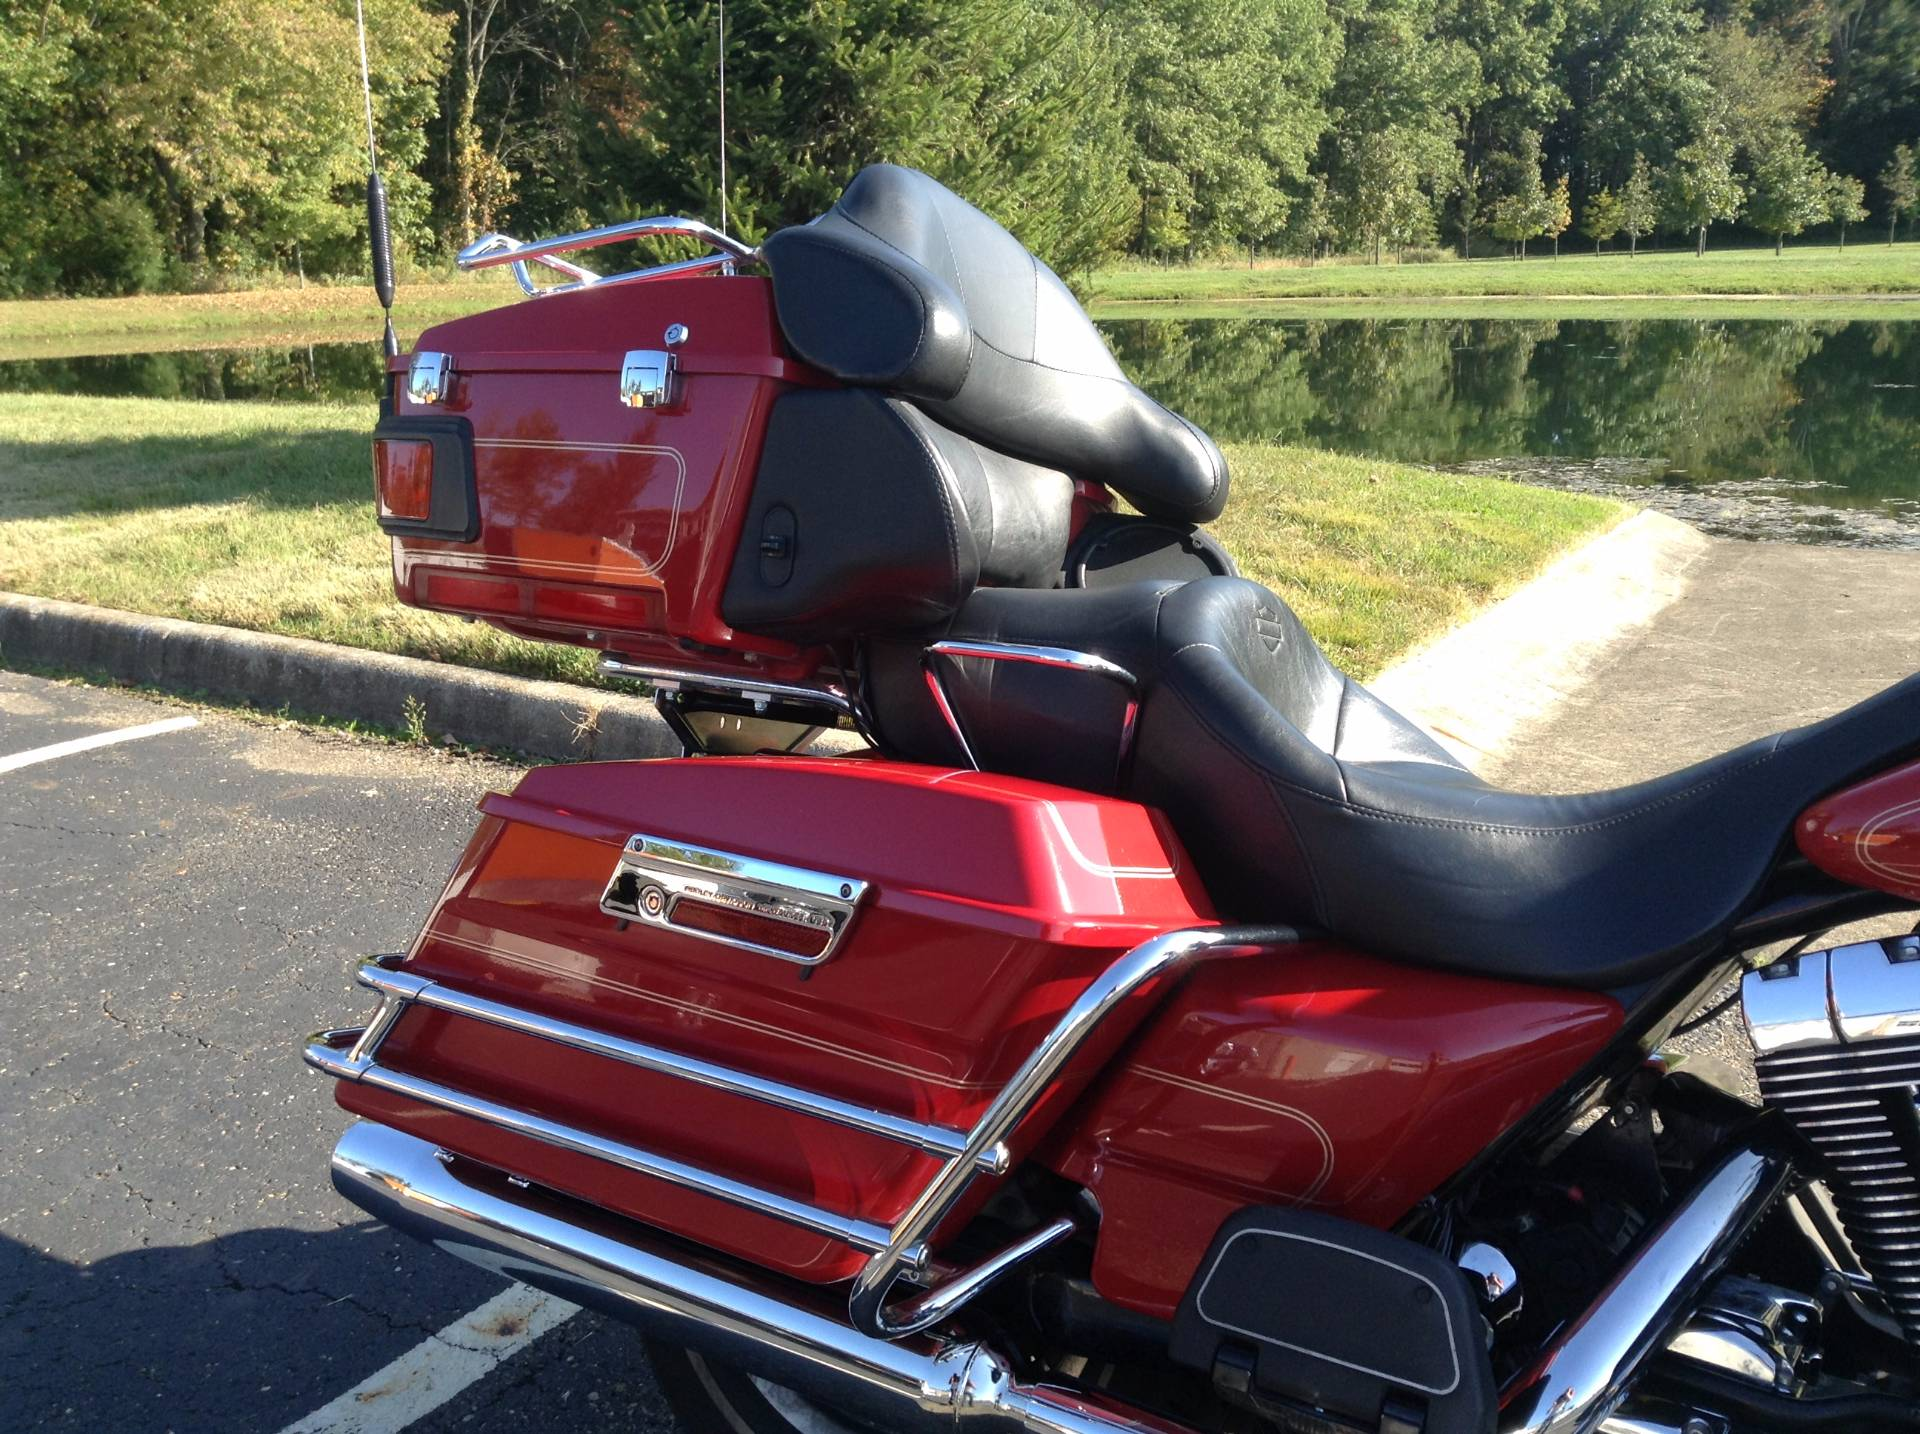 2005 Harley-Davidson FLHTCUI Ultra Classic® Electra Glide® Firefighter Special Edition in Sunbury, Ohio - Photo 10